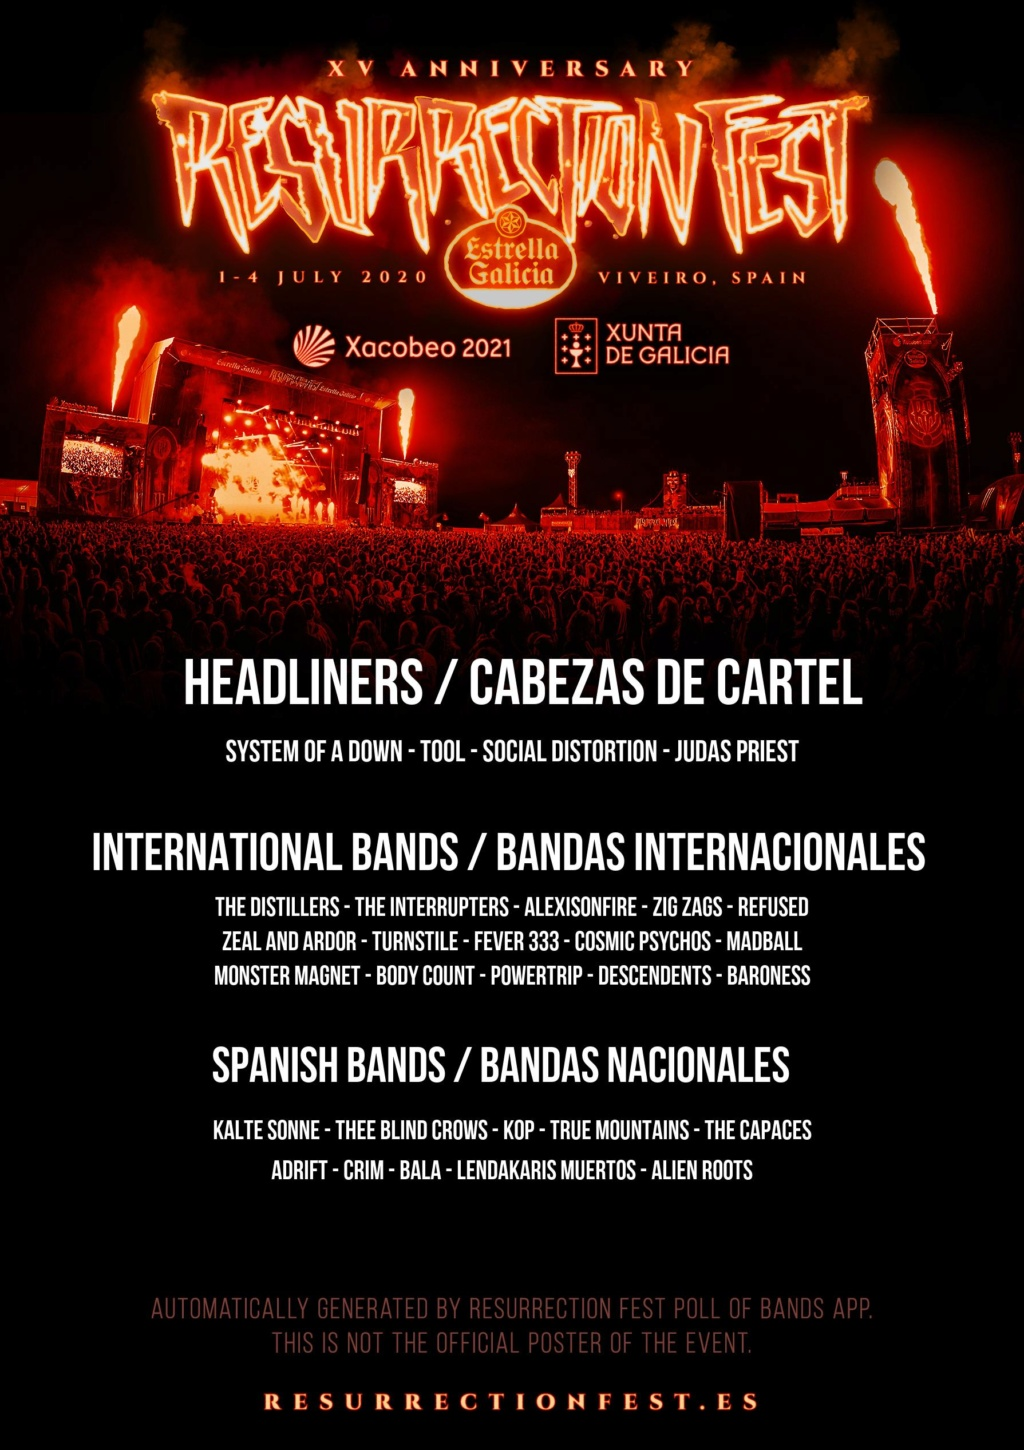 RESURRECTION FEST 2020 (1-4 / 7 /20) - Página 10 8cf78910